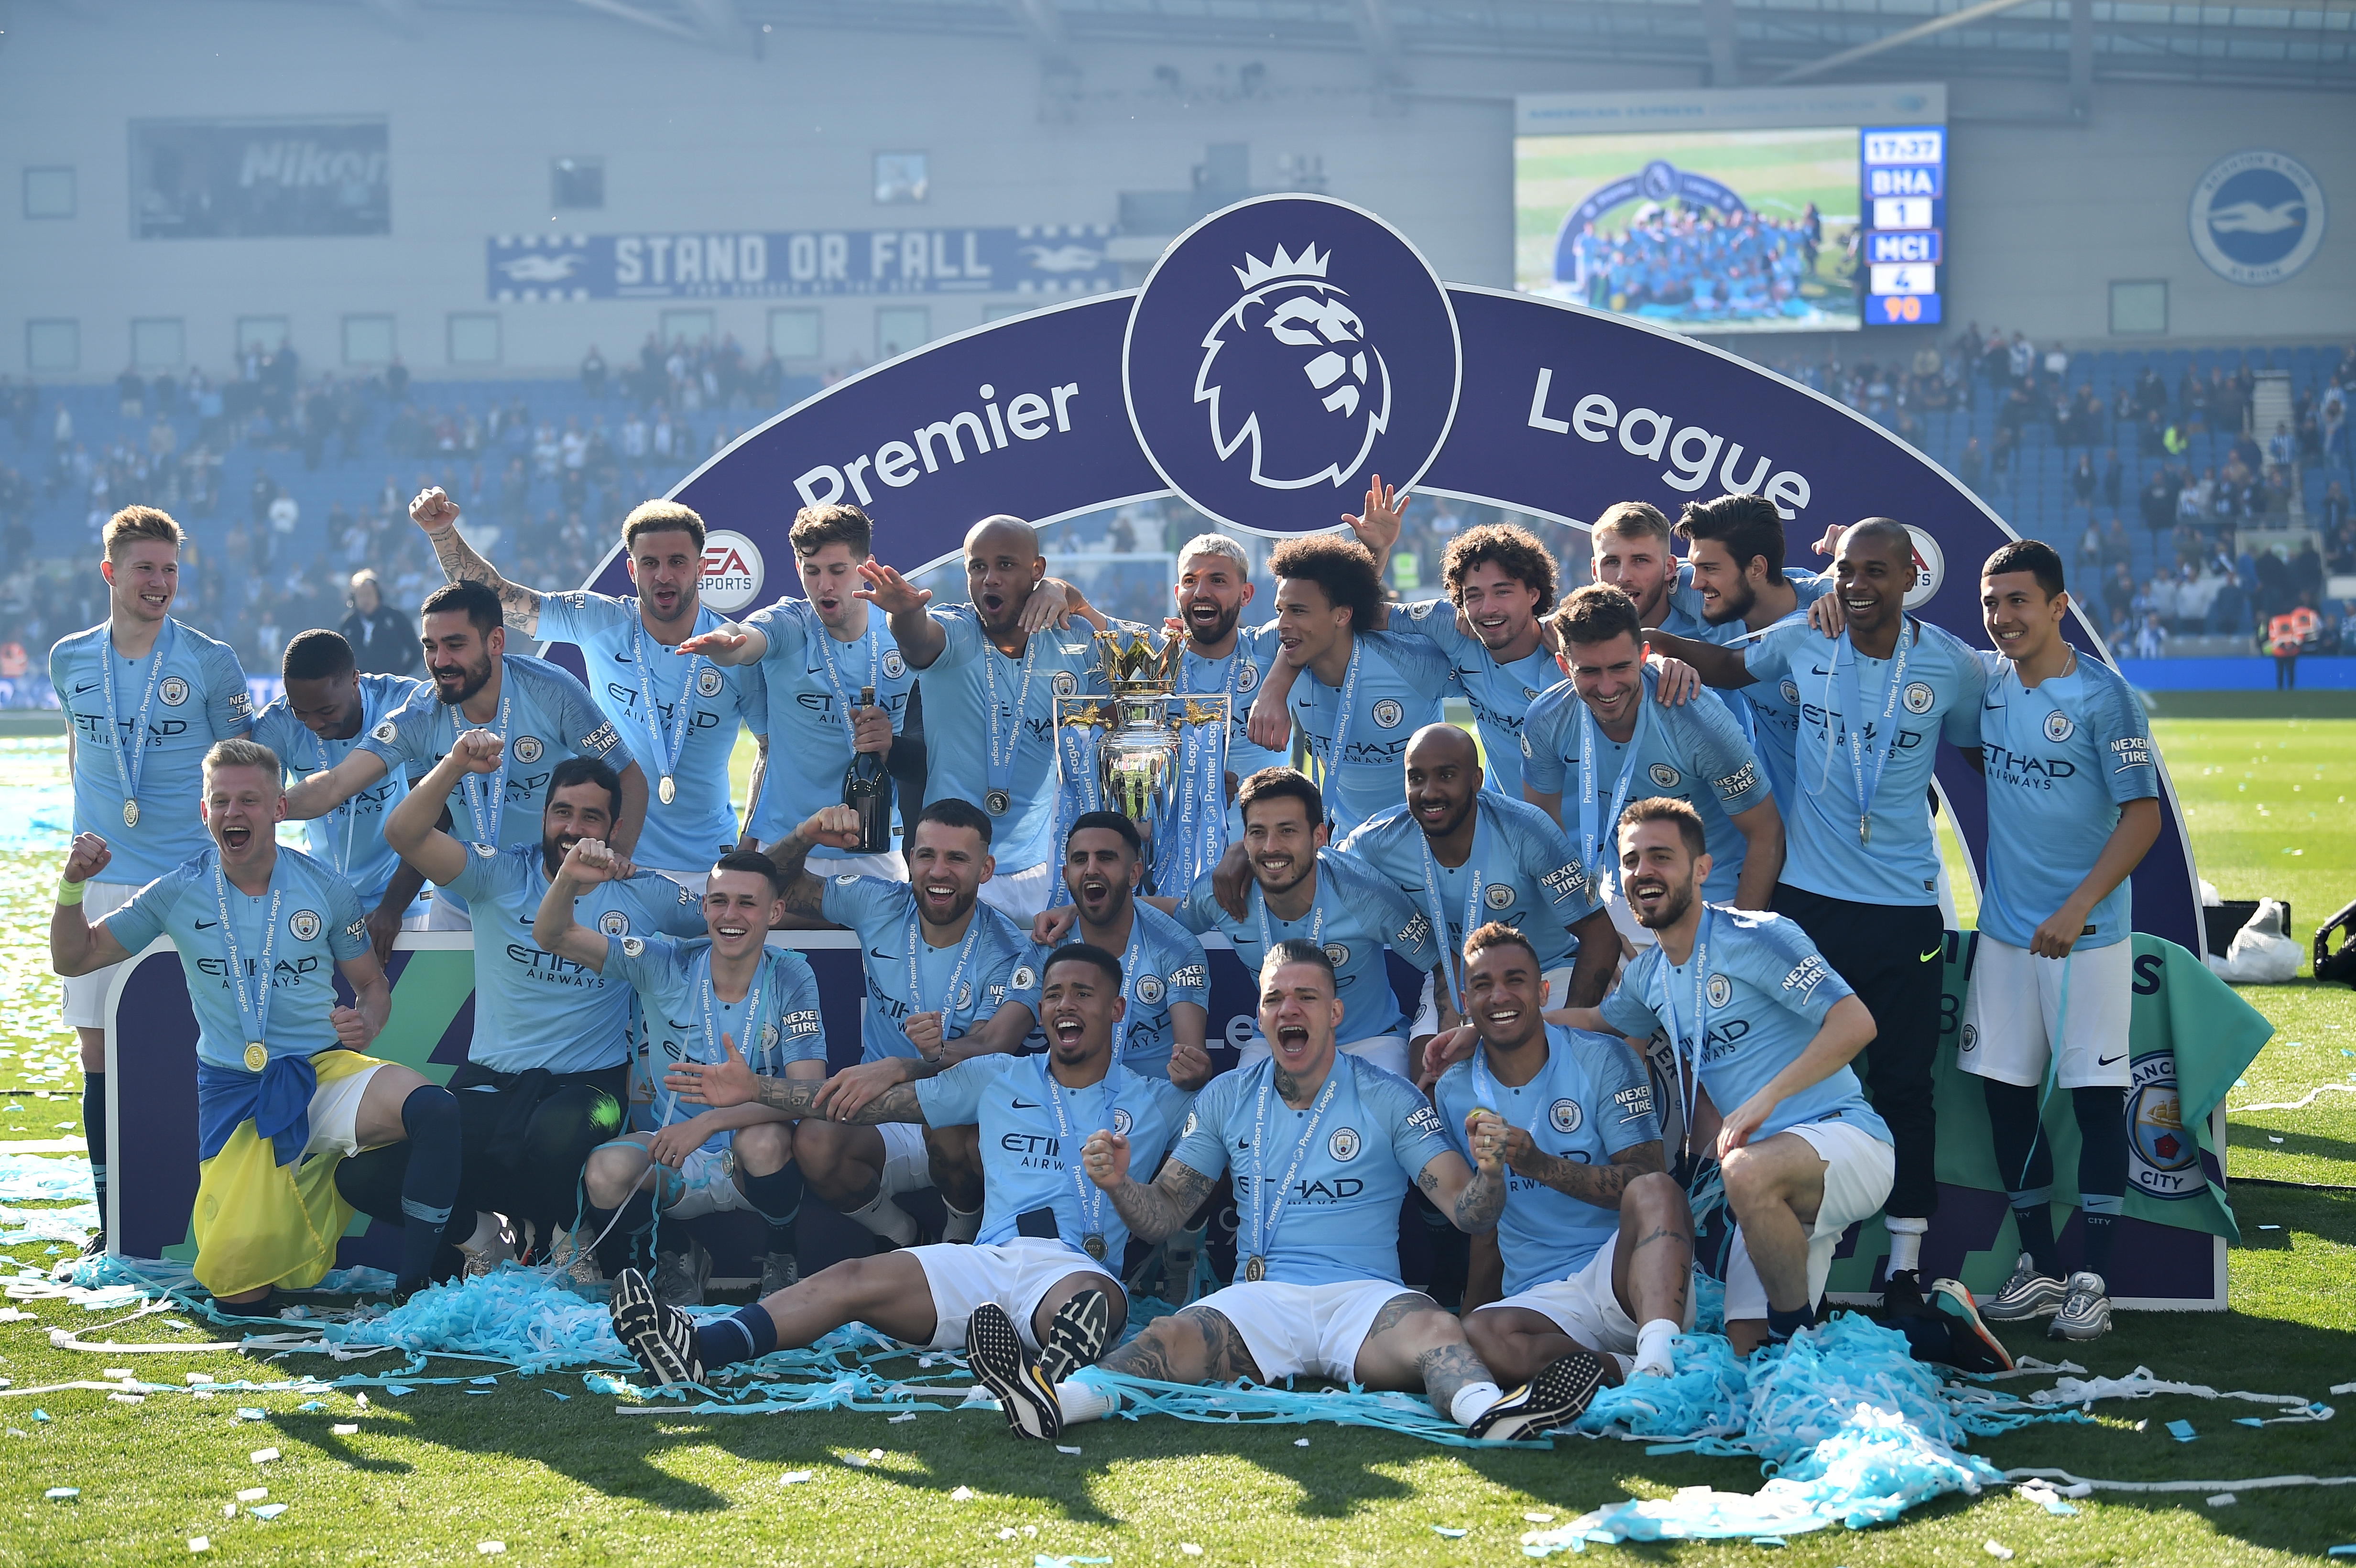 File: Manchester City are believed to be challenging UEFA's right to send the case to their adjudicatory chamber and its competence to judge on the club at all.